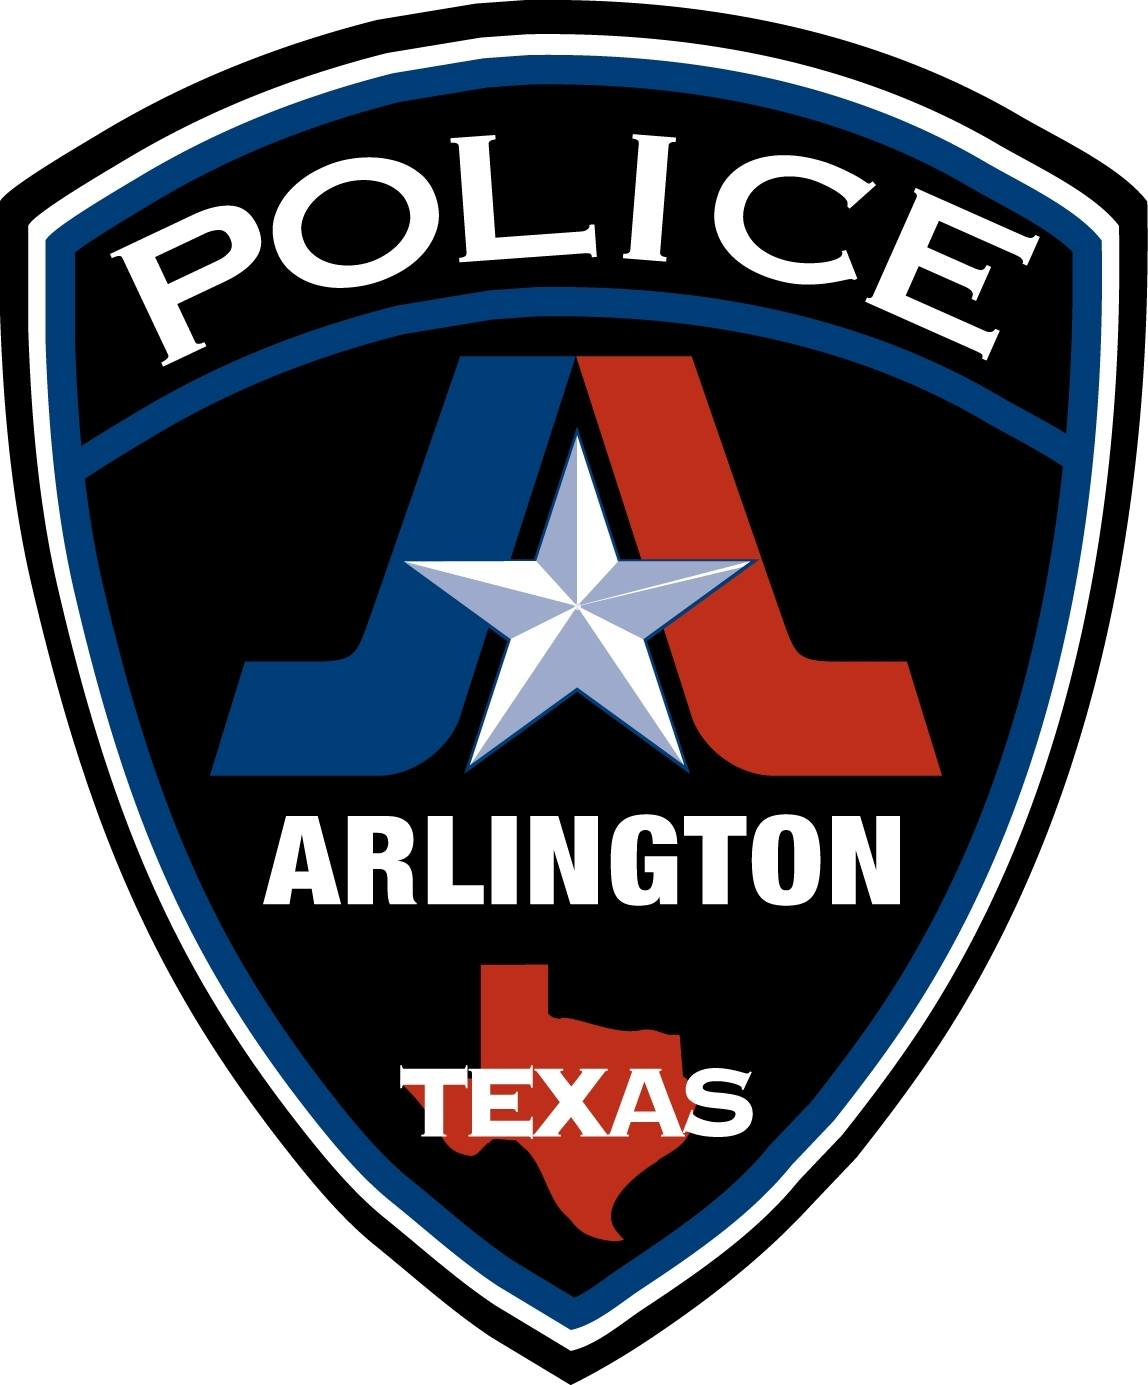 Arlington PD Seeks Publics Help In Identifying Suspicious Person That Has Involved Three Children